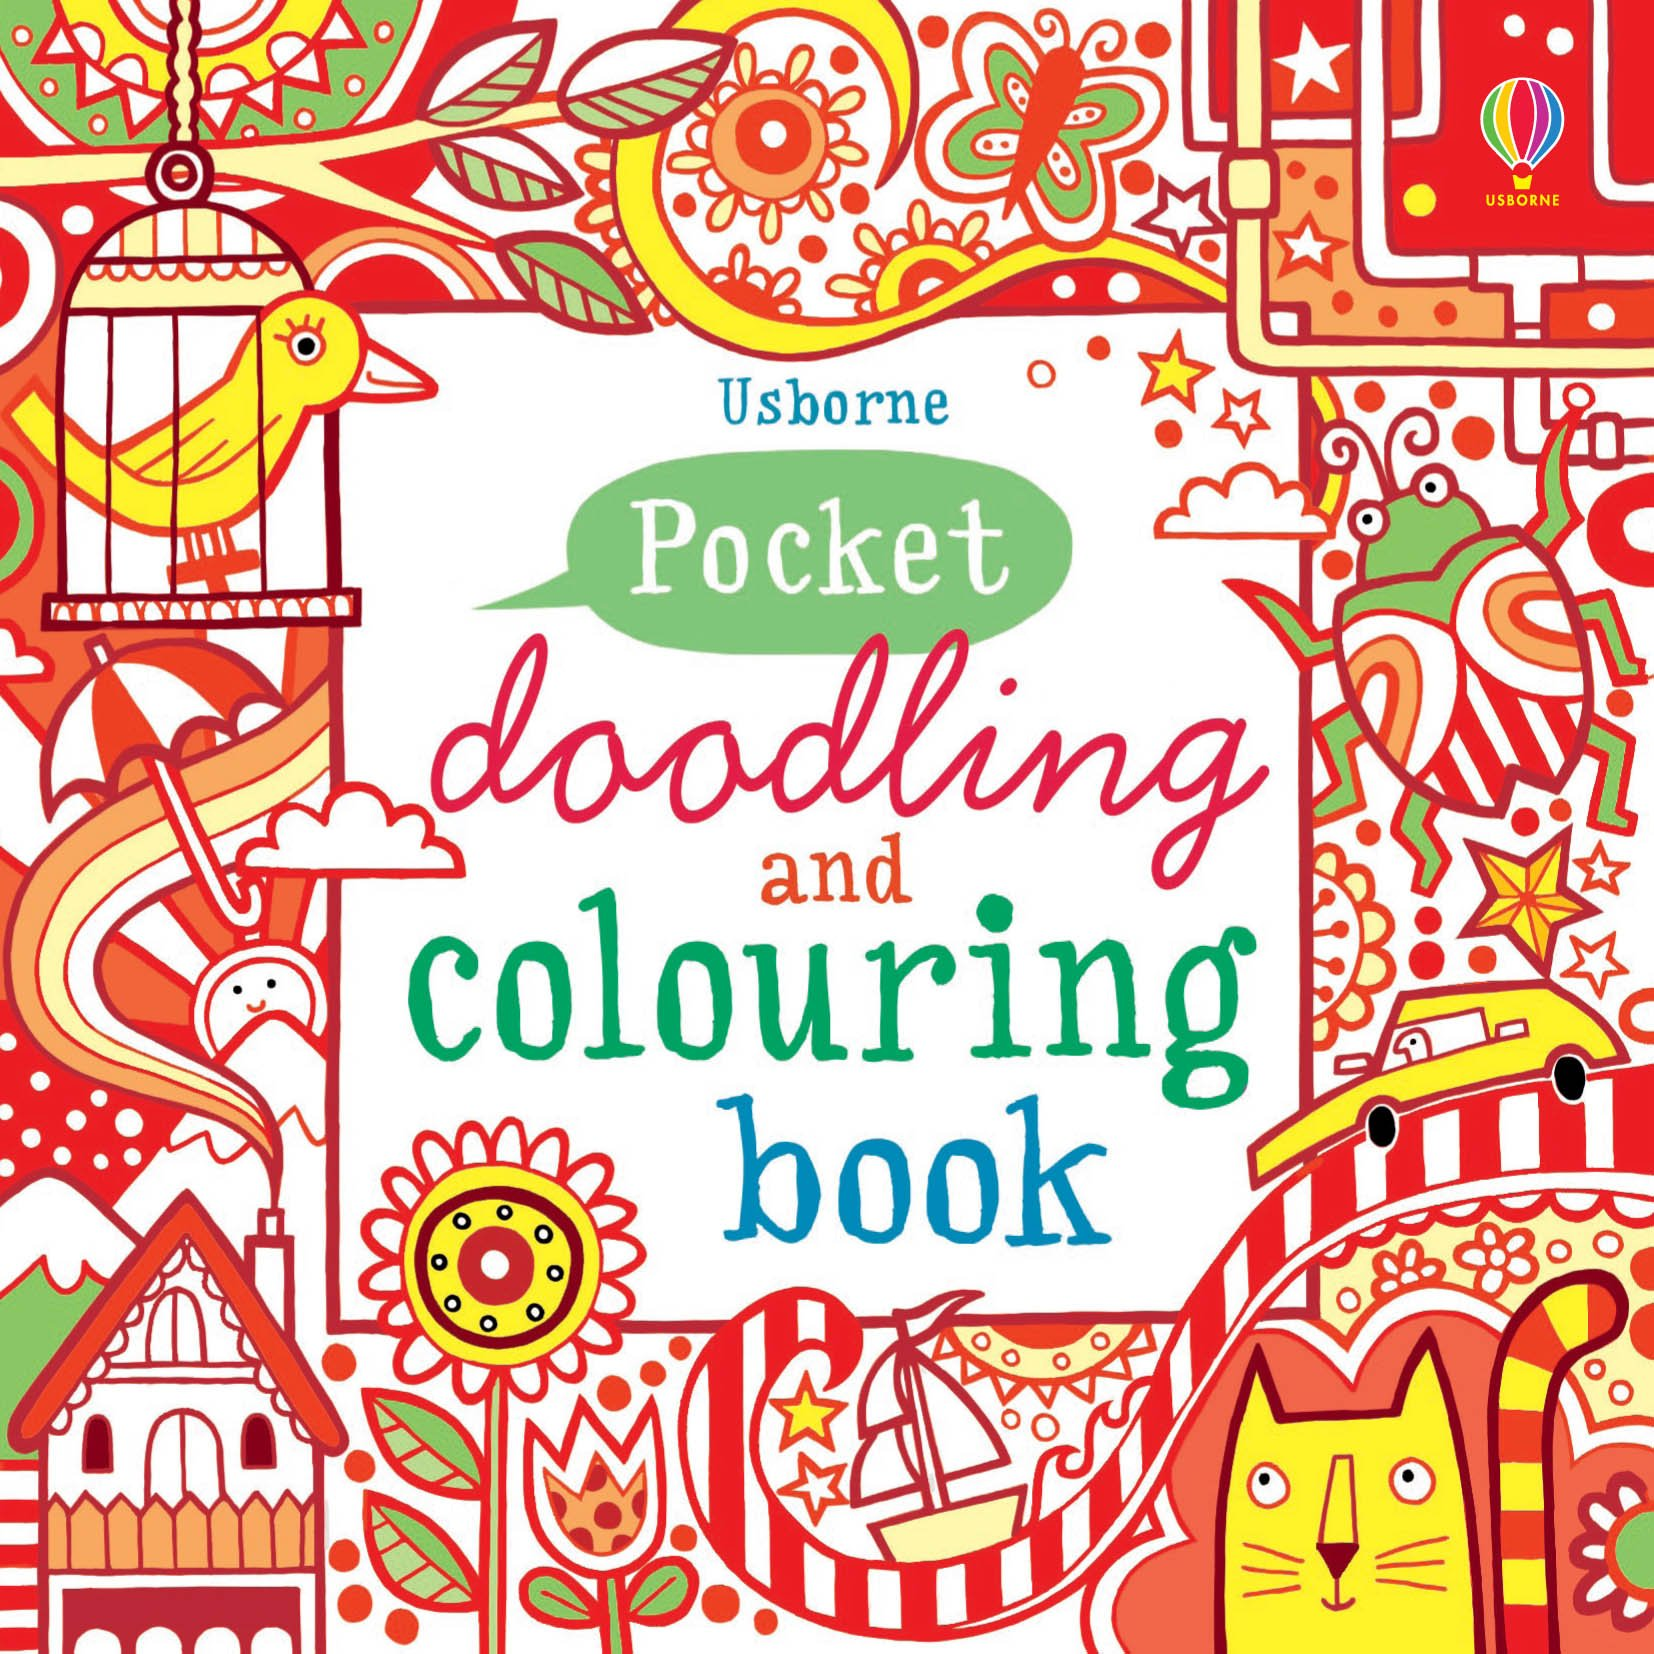 Little Doodling and Colouring Book Red Book Usborne Art Ideas